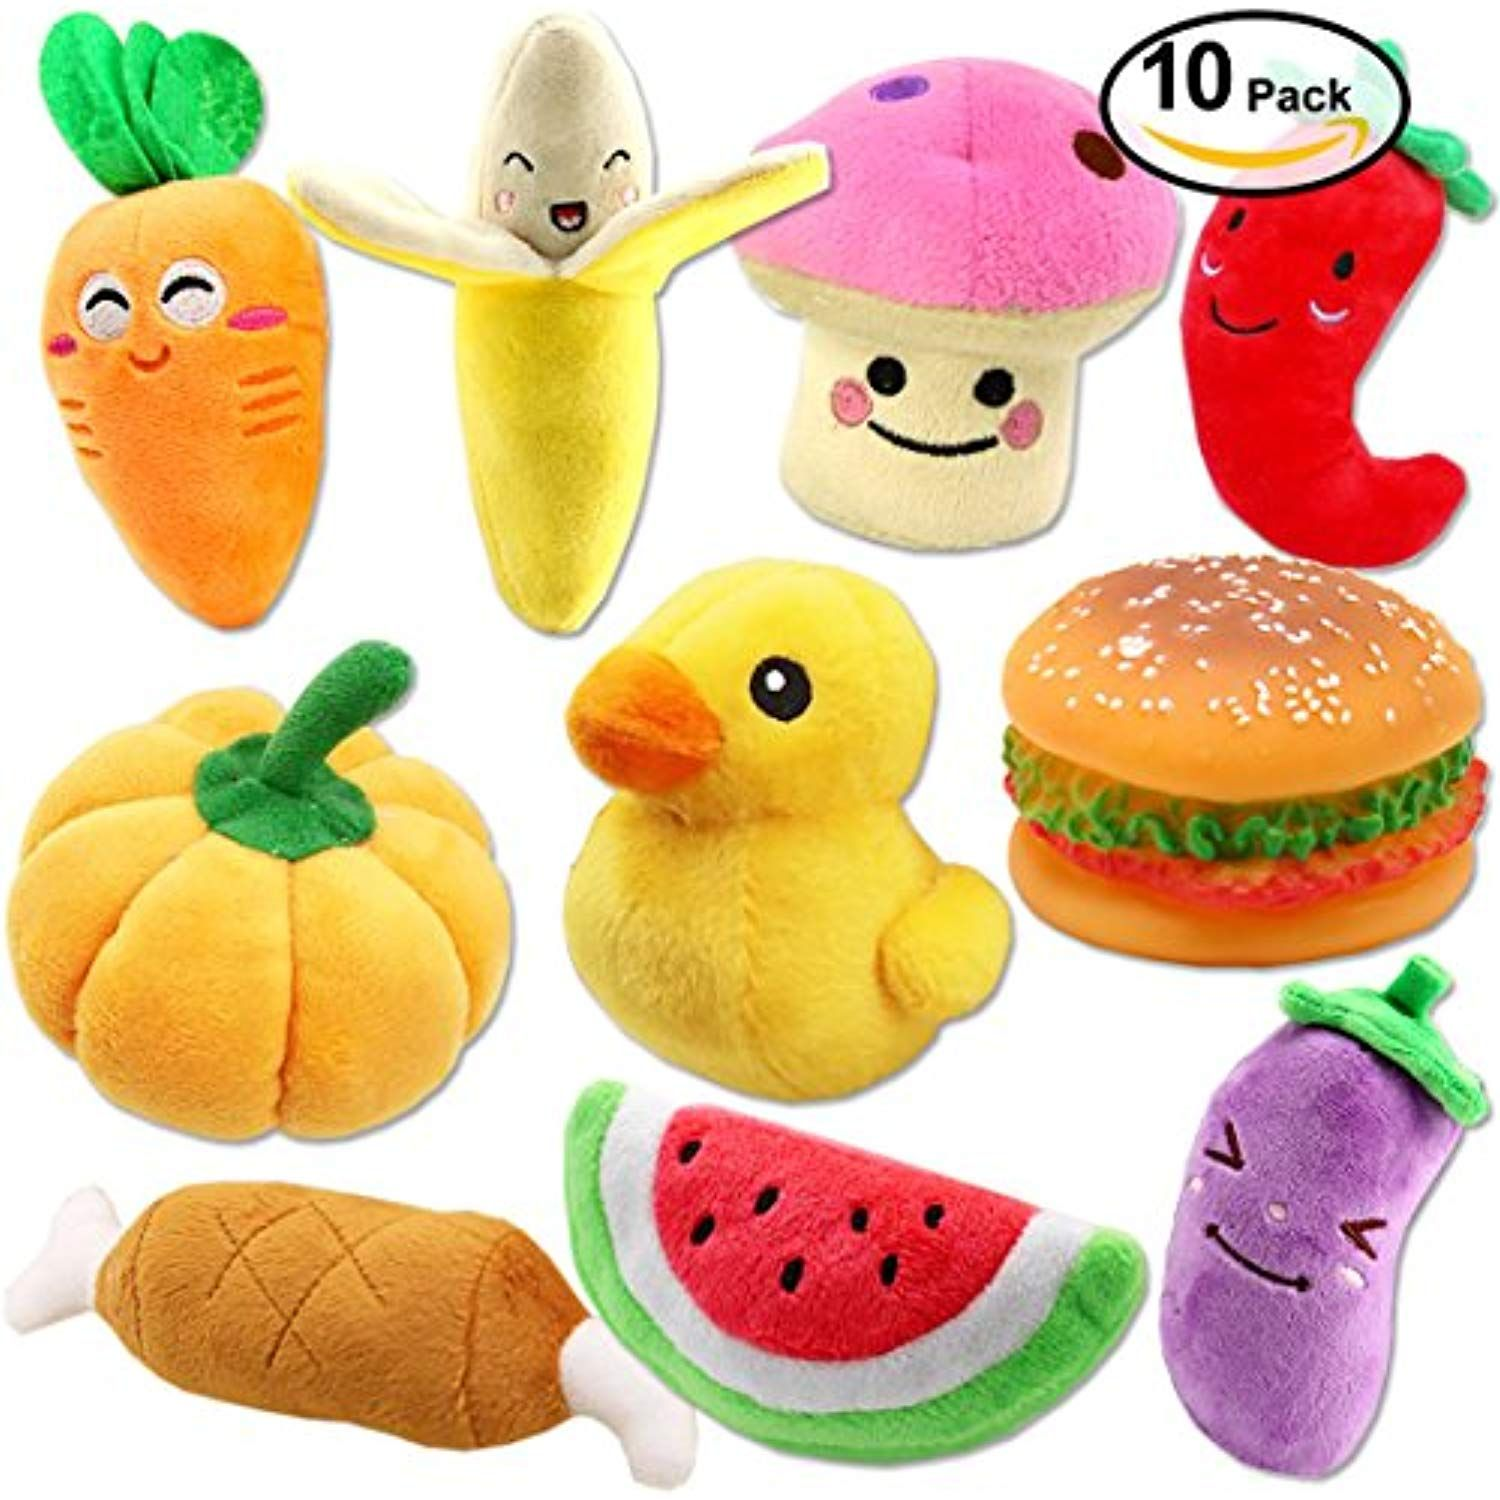 Plush Vegetable Dog Toy Set For Puppy Squeaky Dog Toys 10 Pack